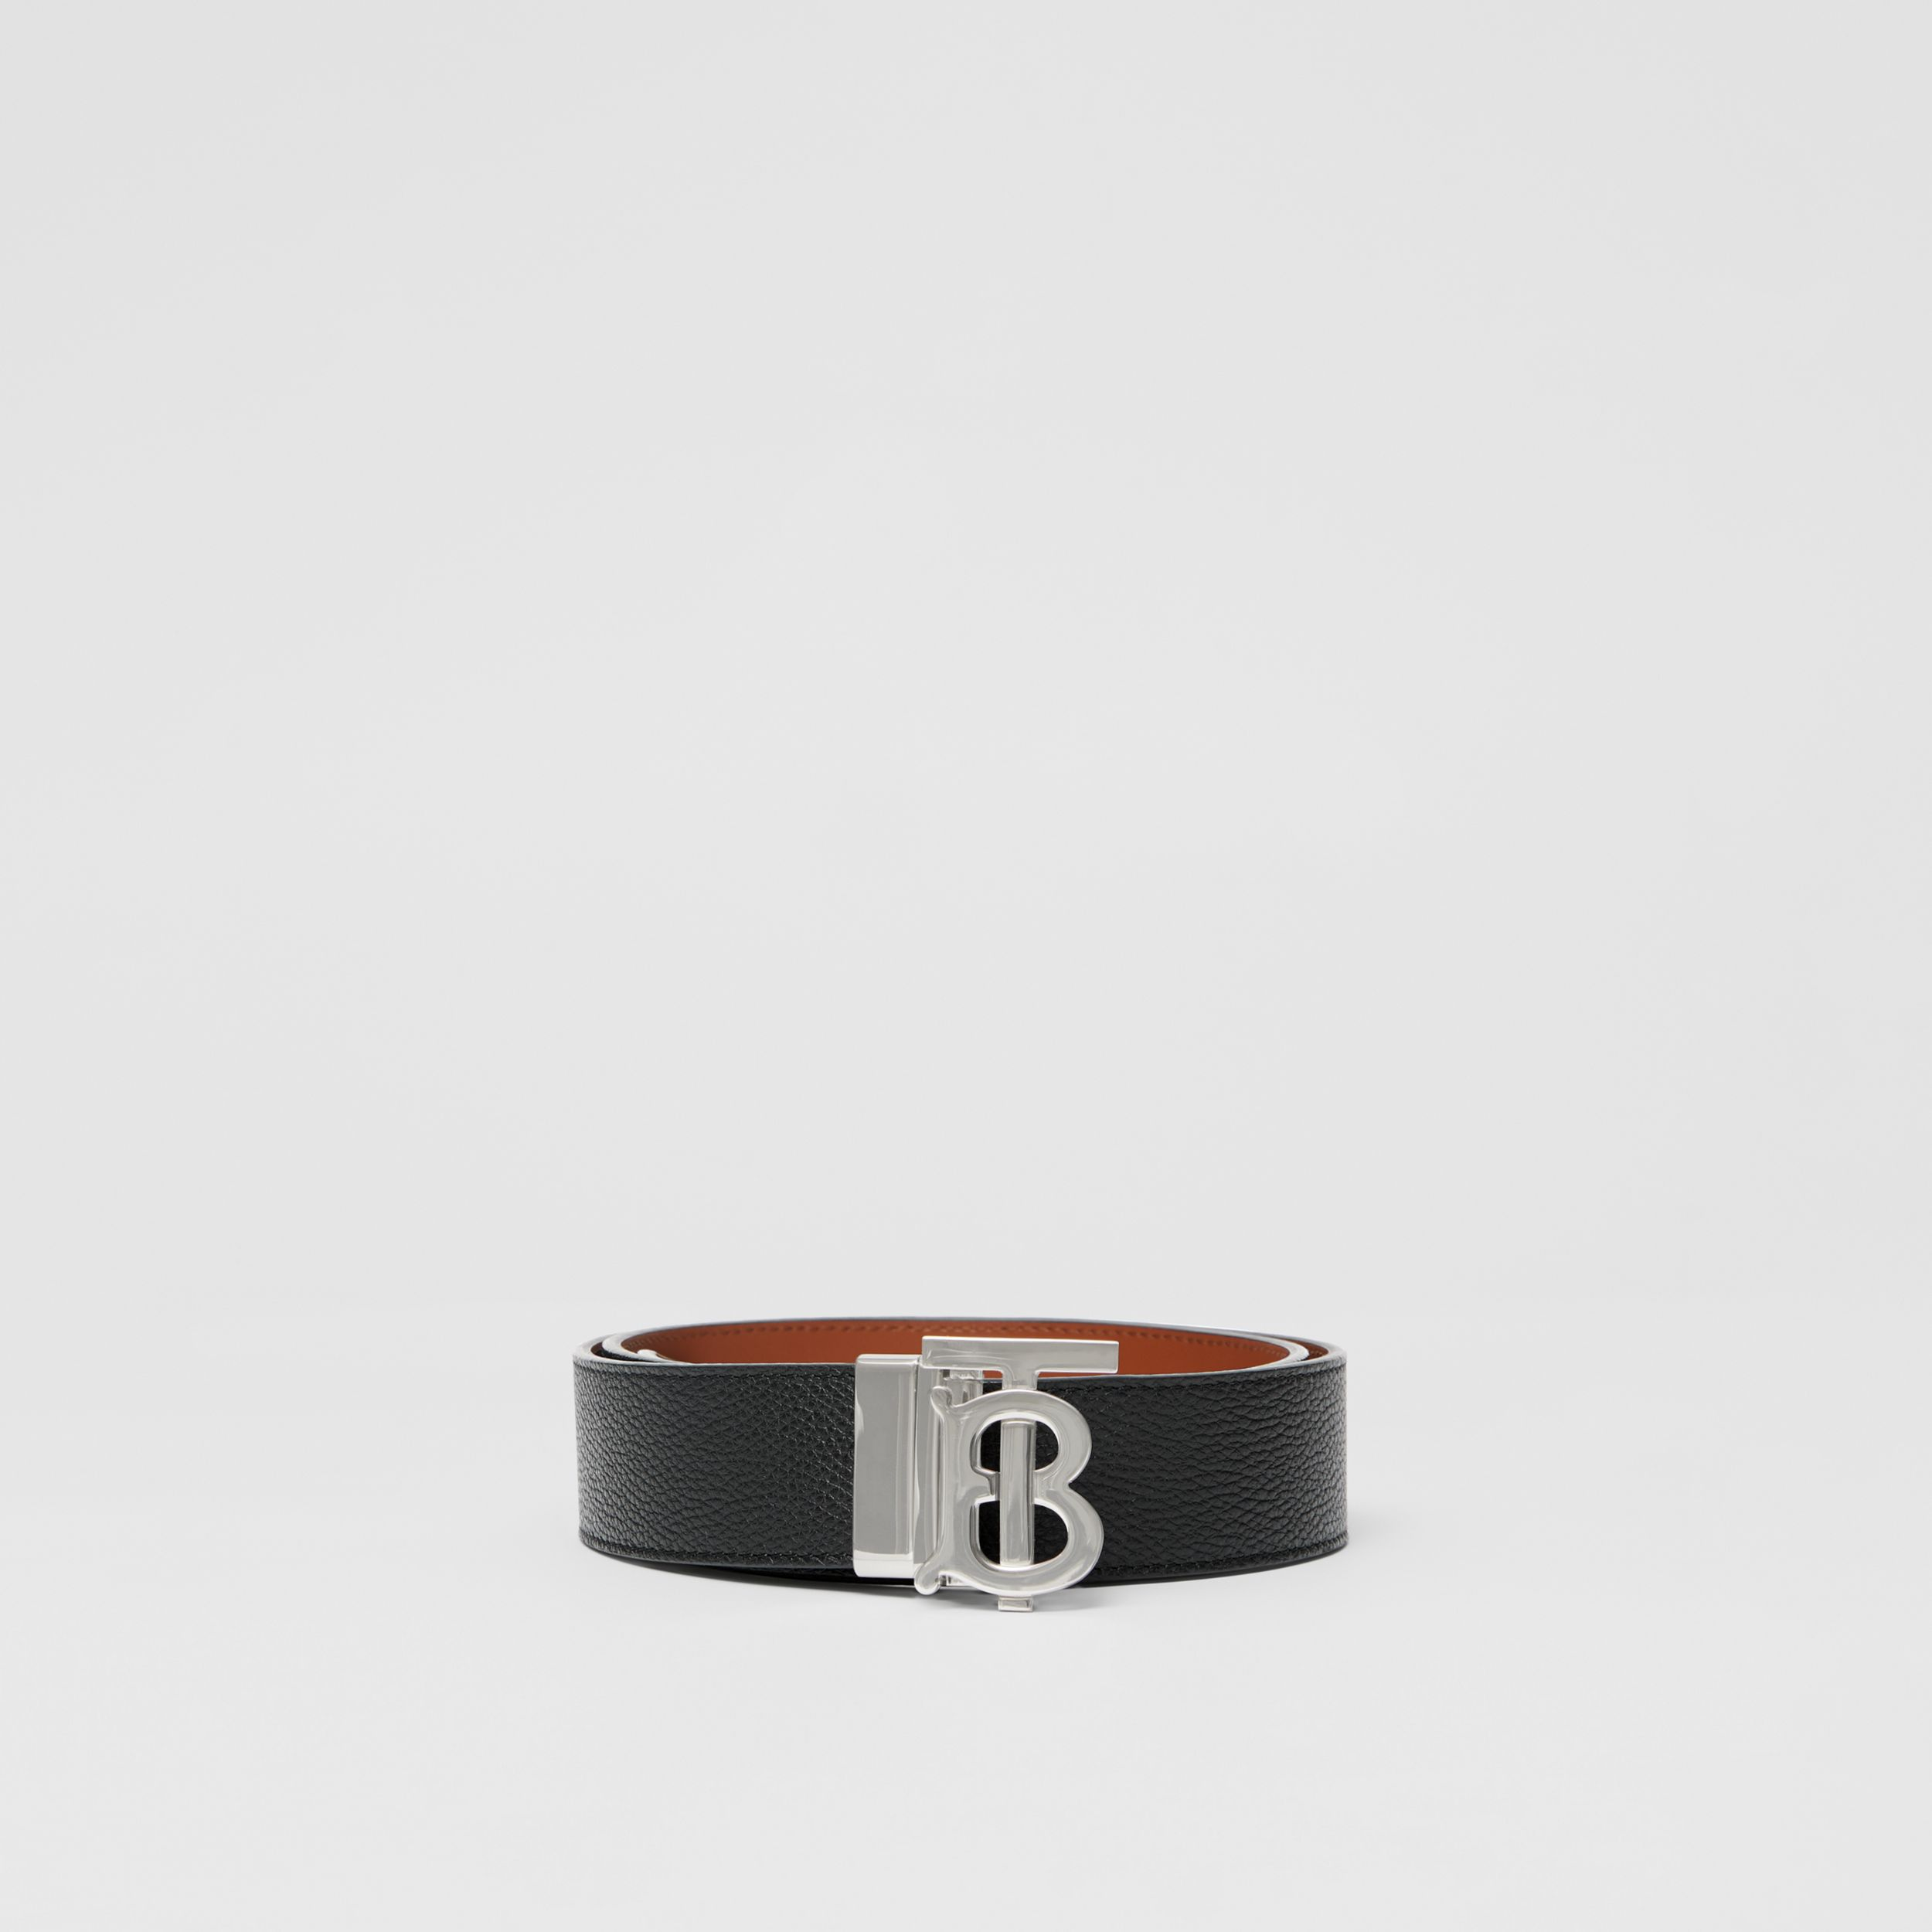 Reversible Monogram Motif Leather Belt in Black/tan - Men | Burberry United Kingdom - 4